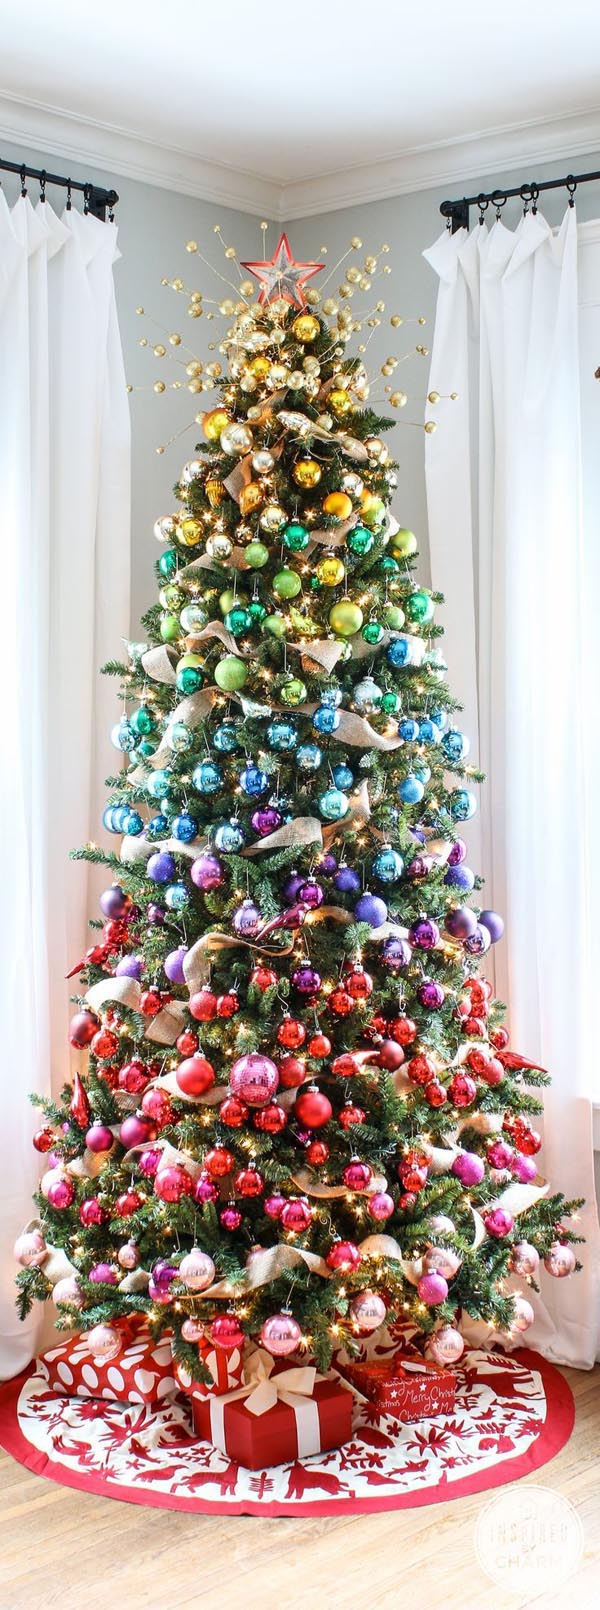 5 christmas tree ideas kids and adults will both love so easy and pretty